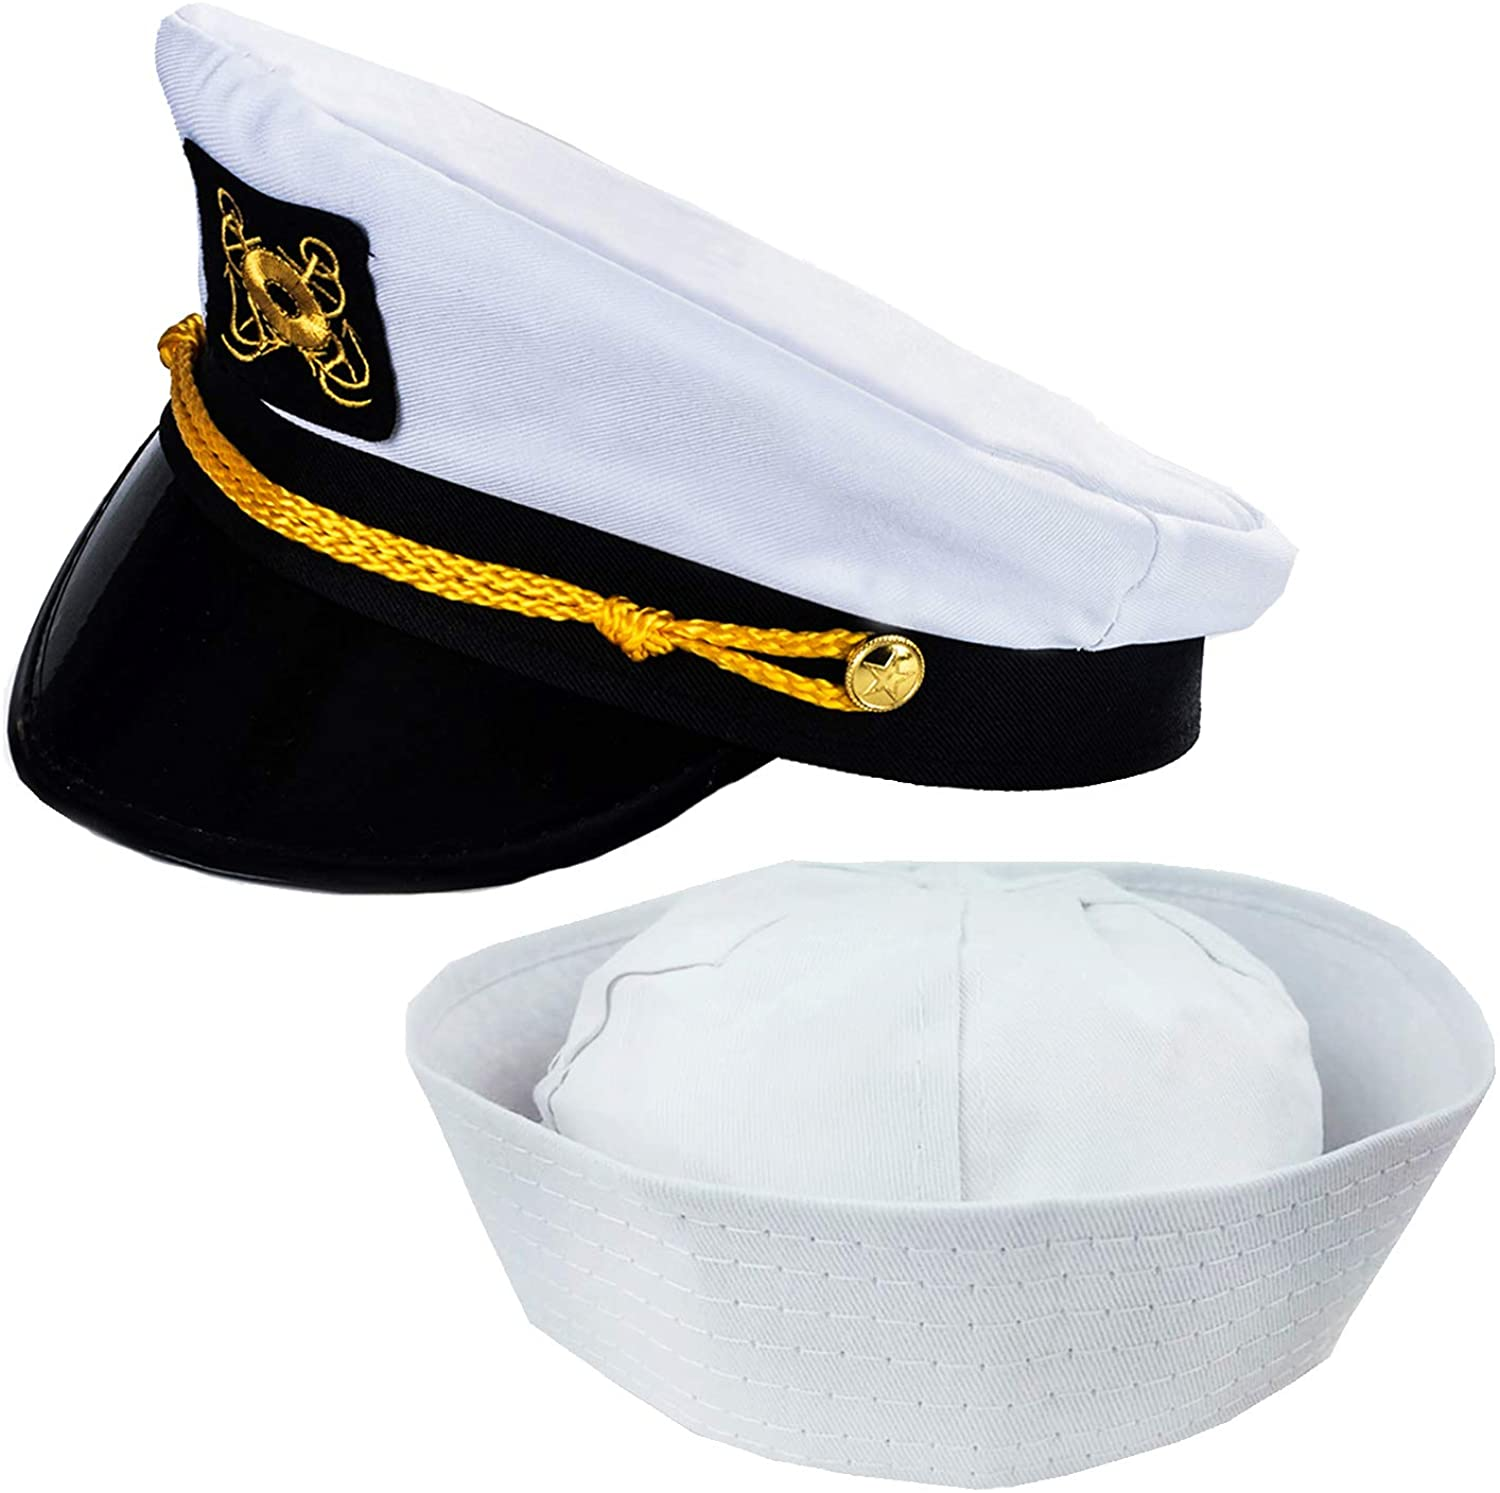 Funny Party Hats Adult Captain's Yacht Hat and White Cotton Sailor Hat - Nautical Party Hats - Sailor Dress Up Hats